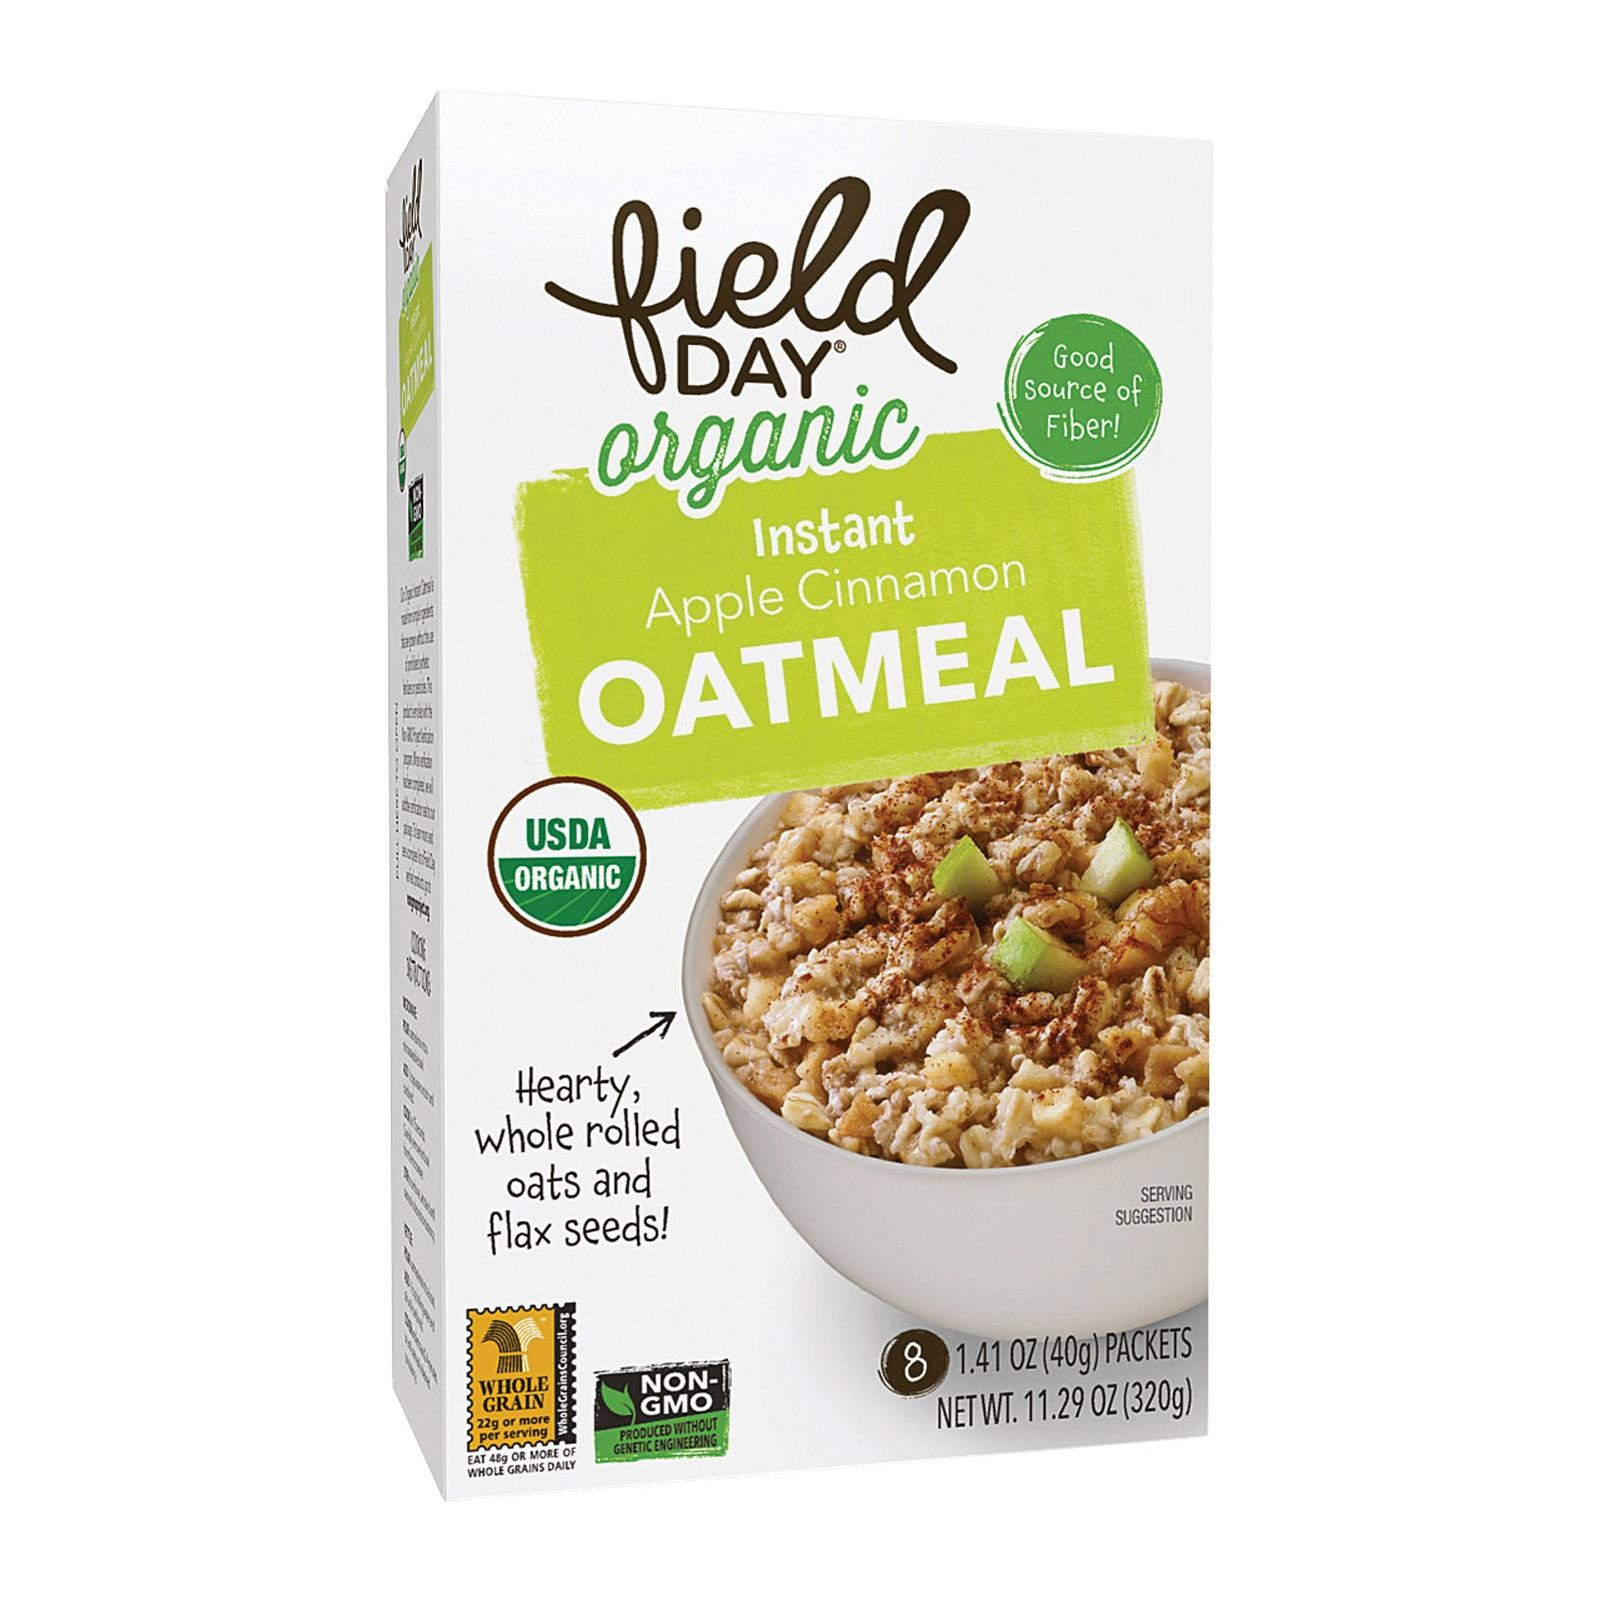 Field Day Organic Instant Apple Cinnamon Oatmeal - Oatmeal - pack of 6 - 11.29 Oz.